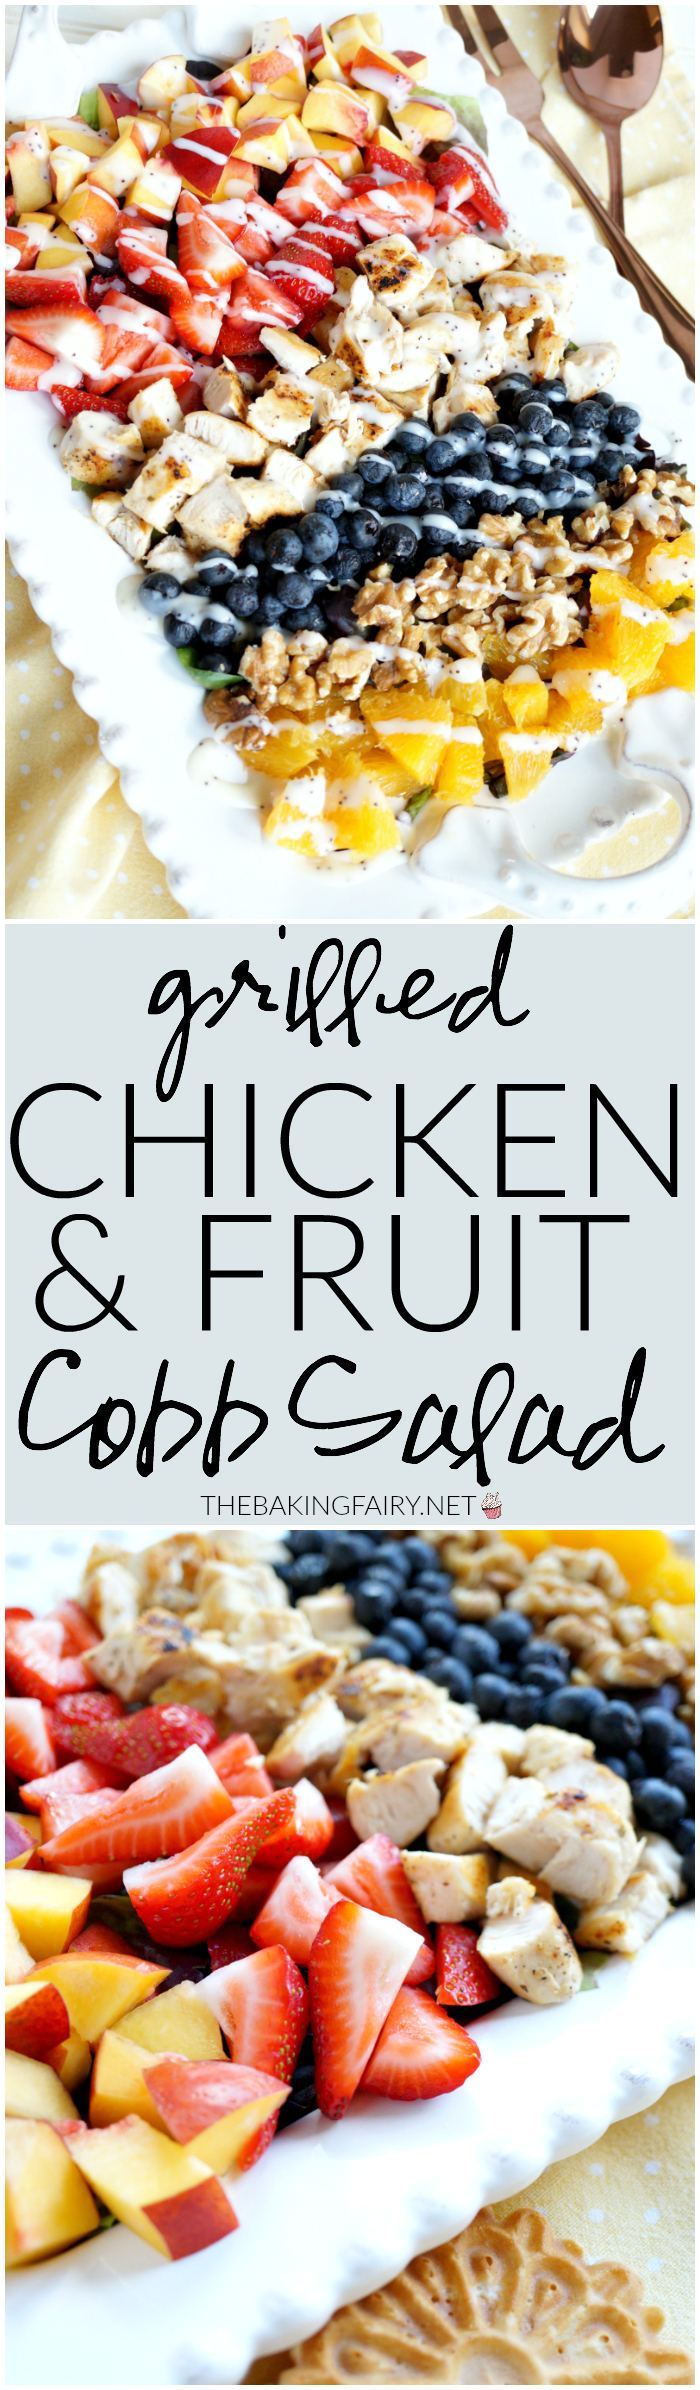 grilled chicken & fruit cobb salad | The Baking Fairy